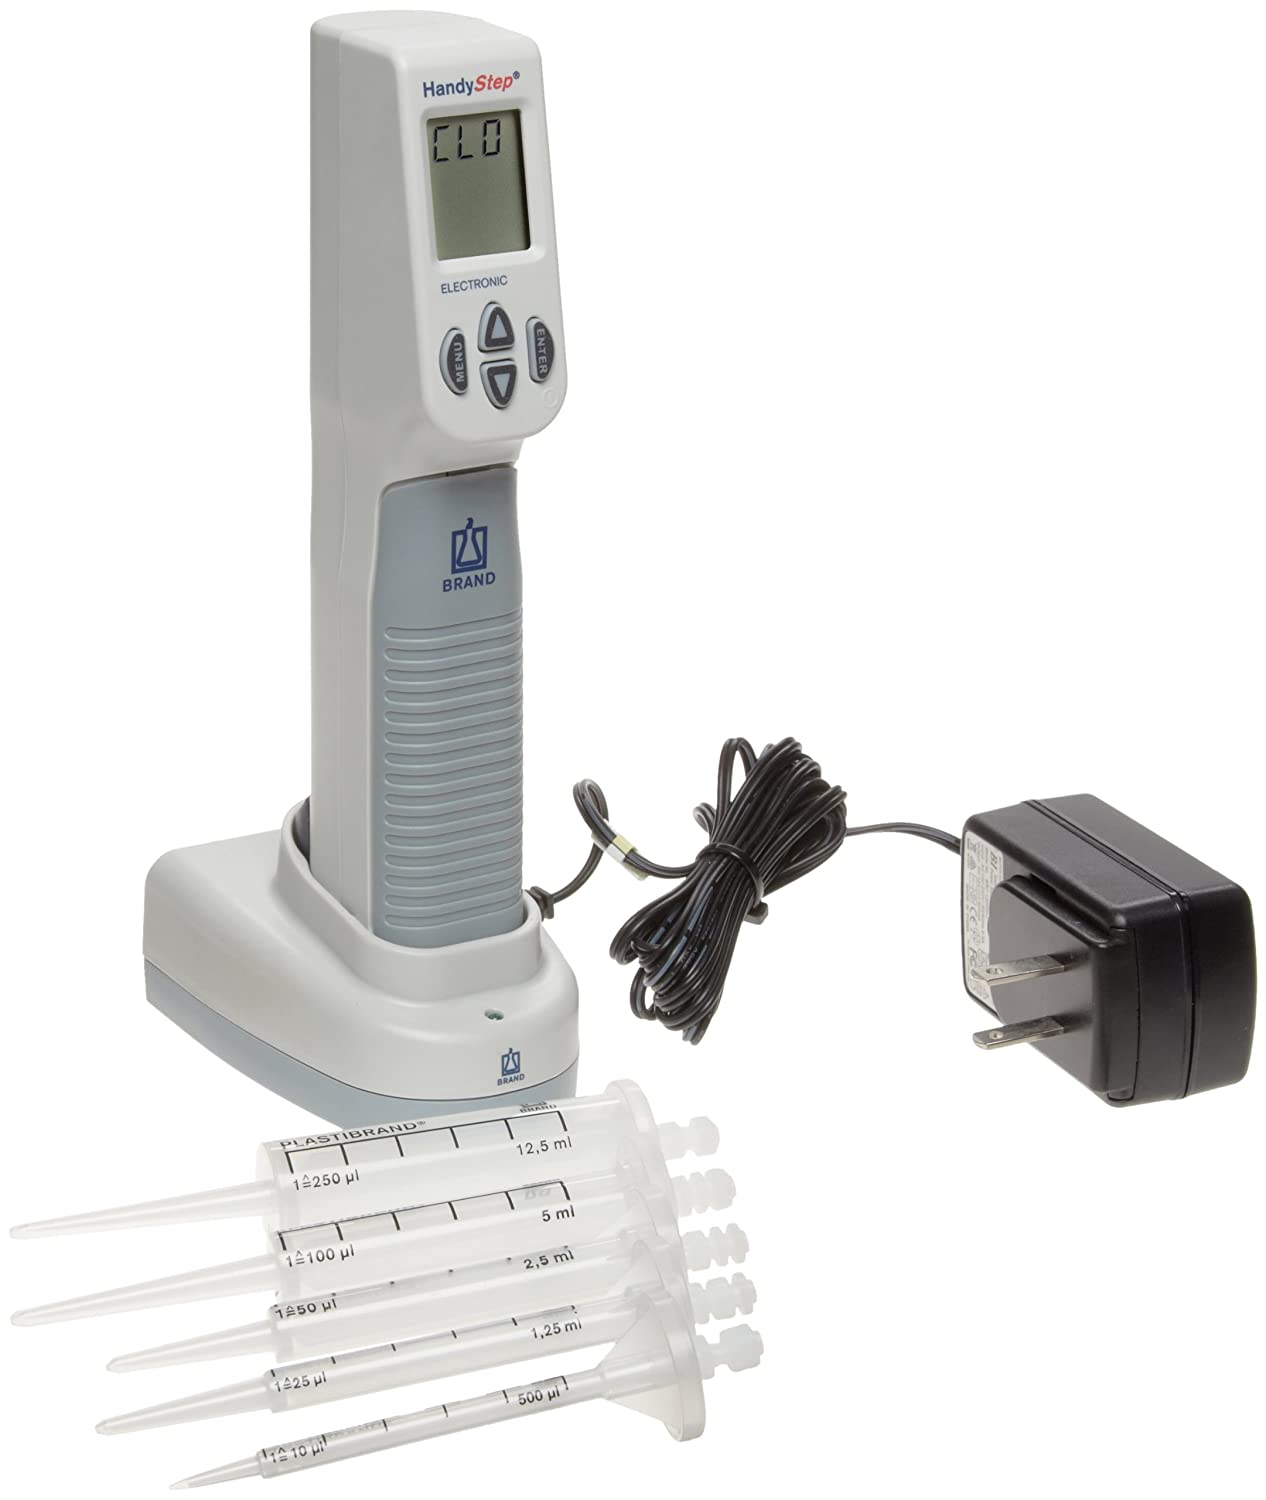 BrandTech 705012 HandyStep Electronic Repeating Pipette 110V